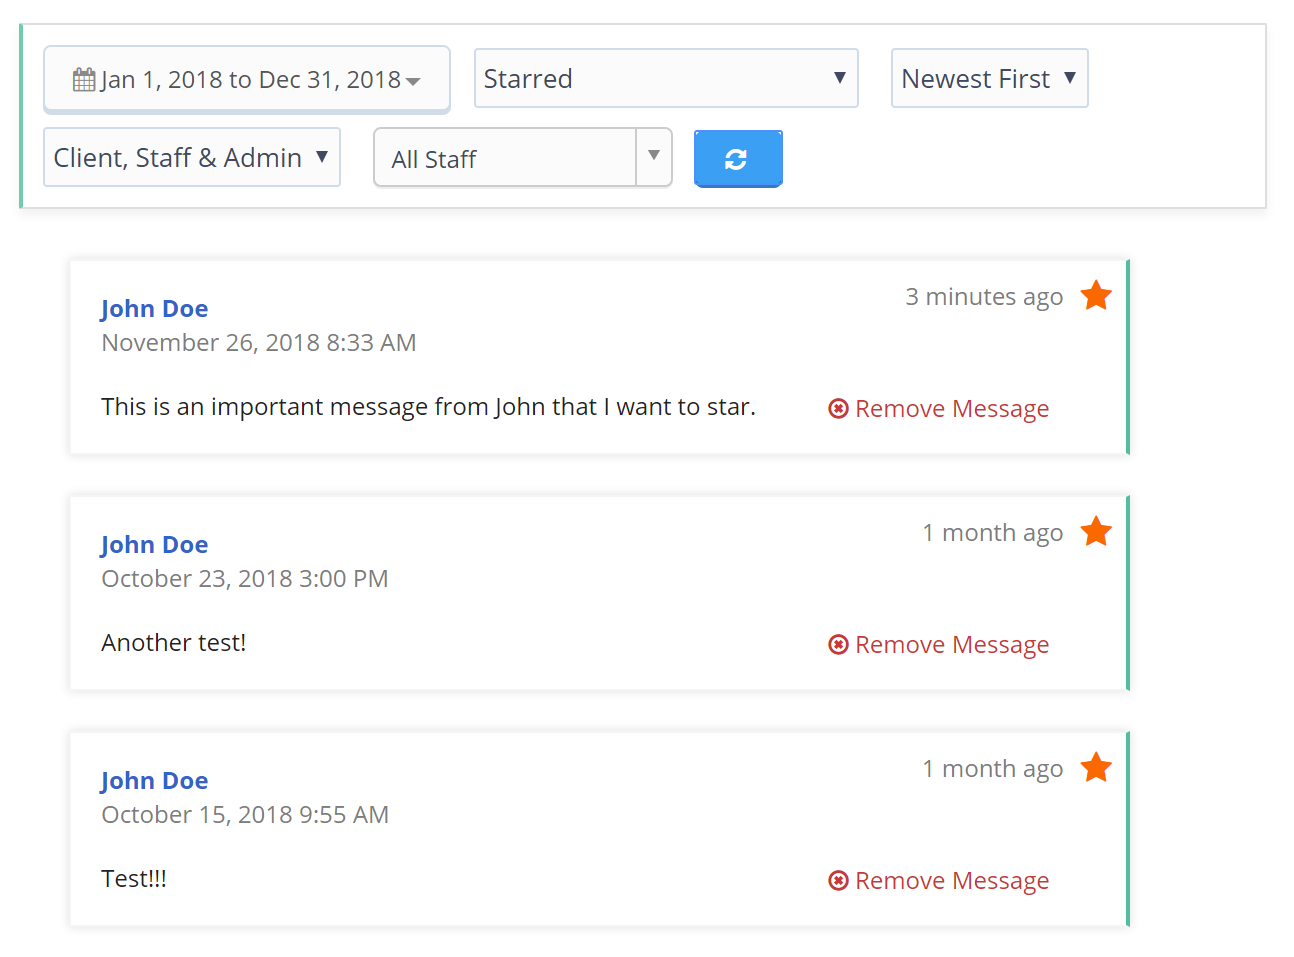 Viewing Messages Filtered by Star in Client Conversation Feed